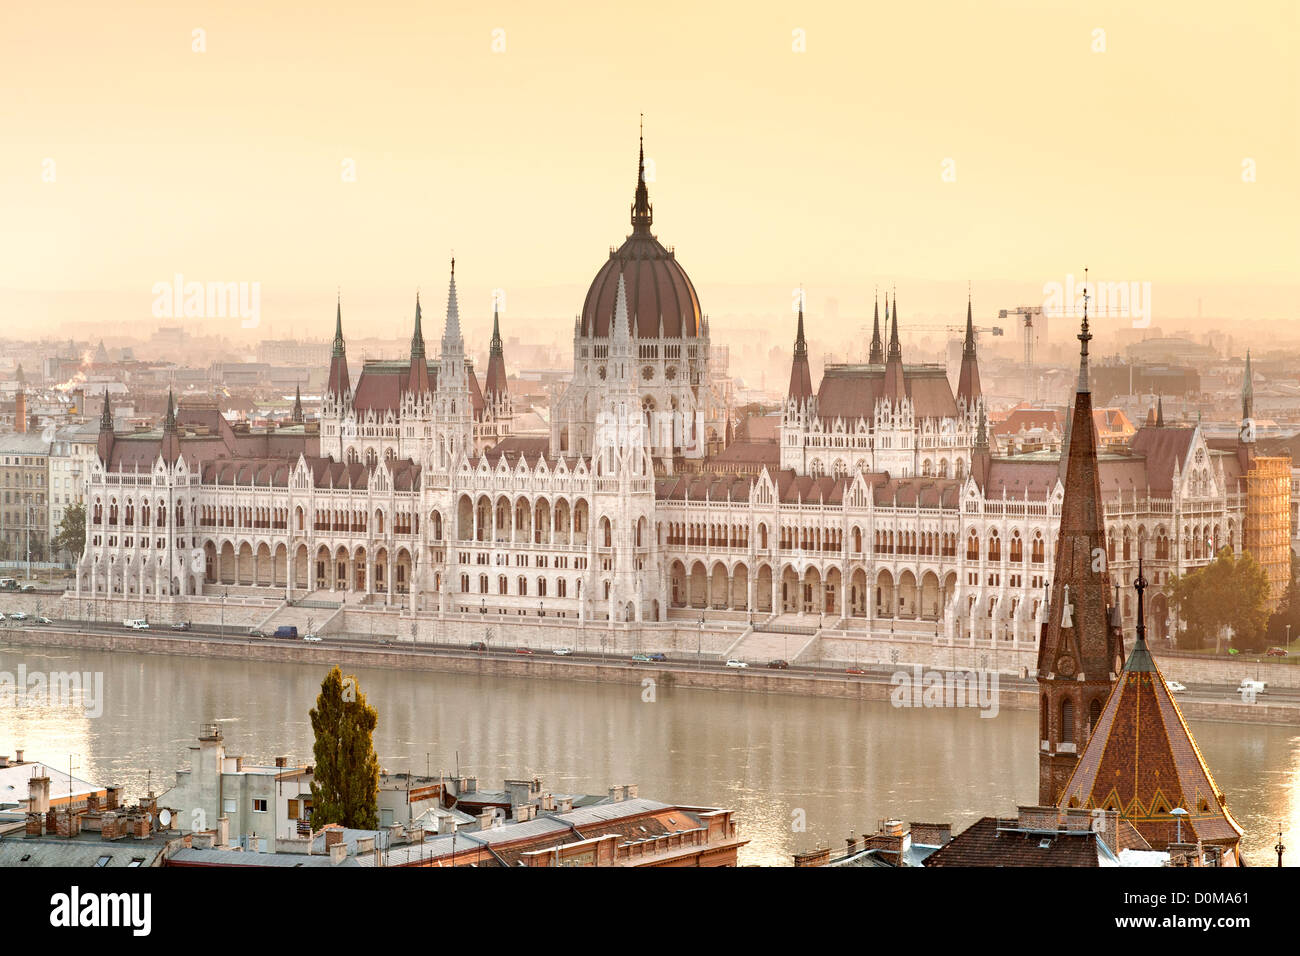 Dawn view of the Hungarian Parliament Building on the banks of the Danube River in Budapest, the capital of Hungary. Stock Photo